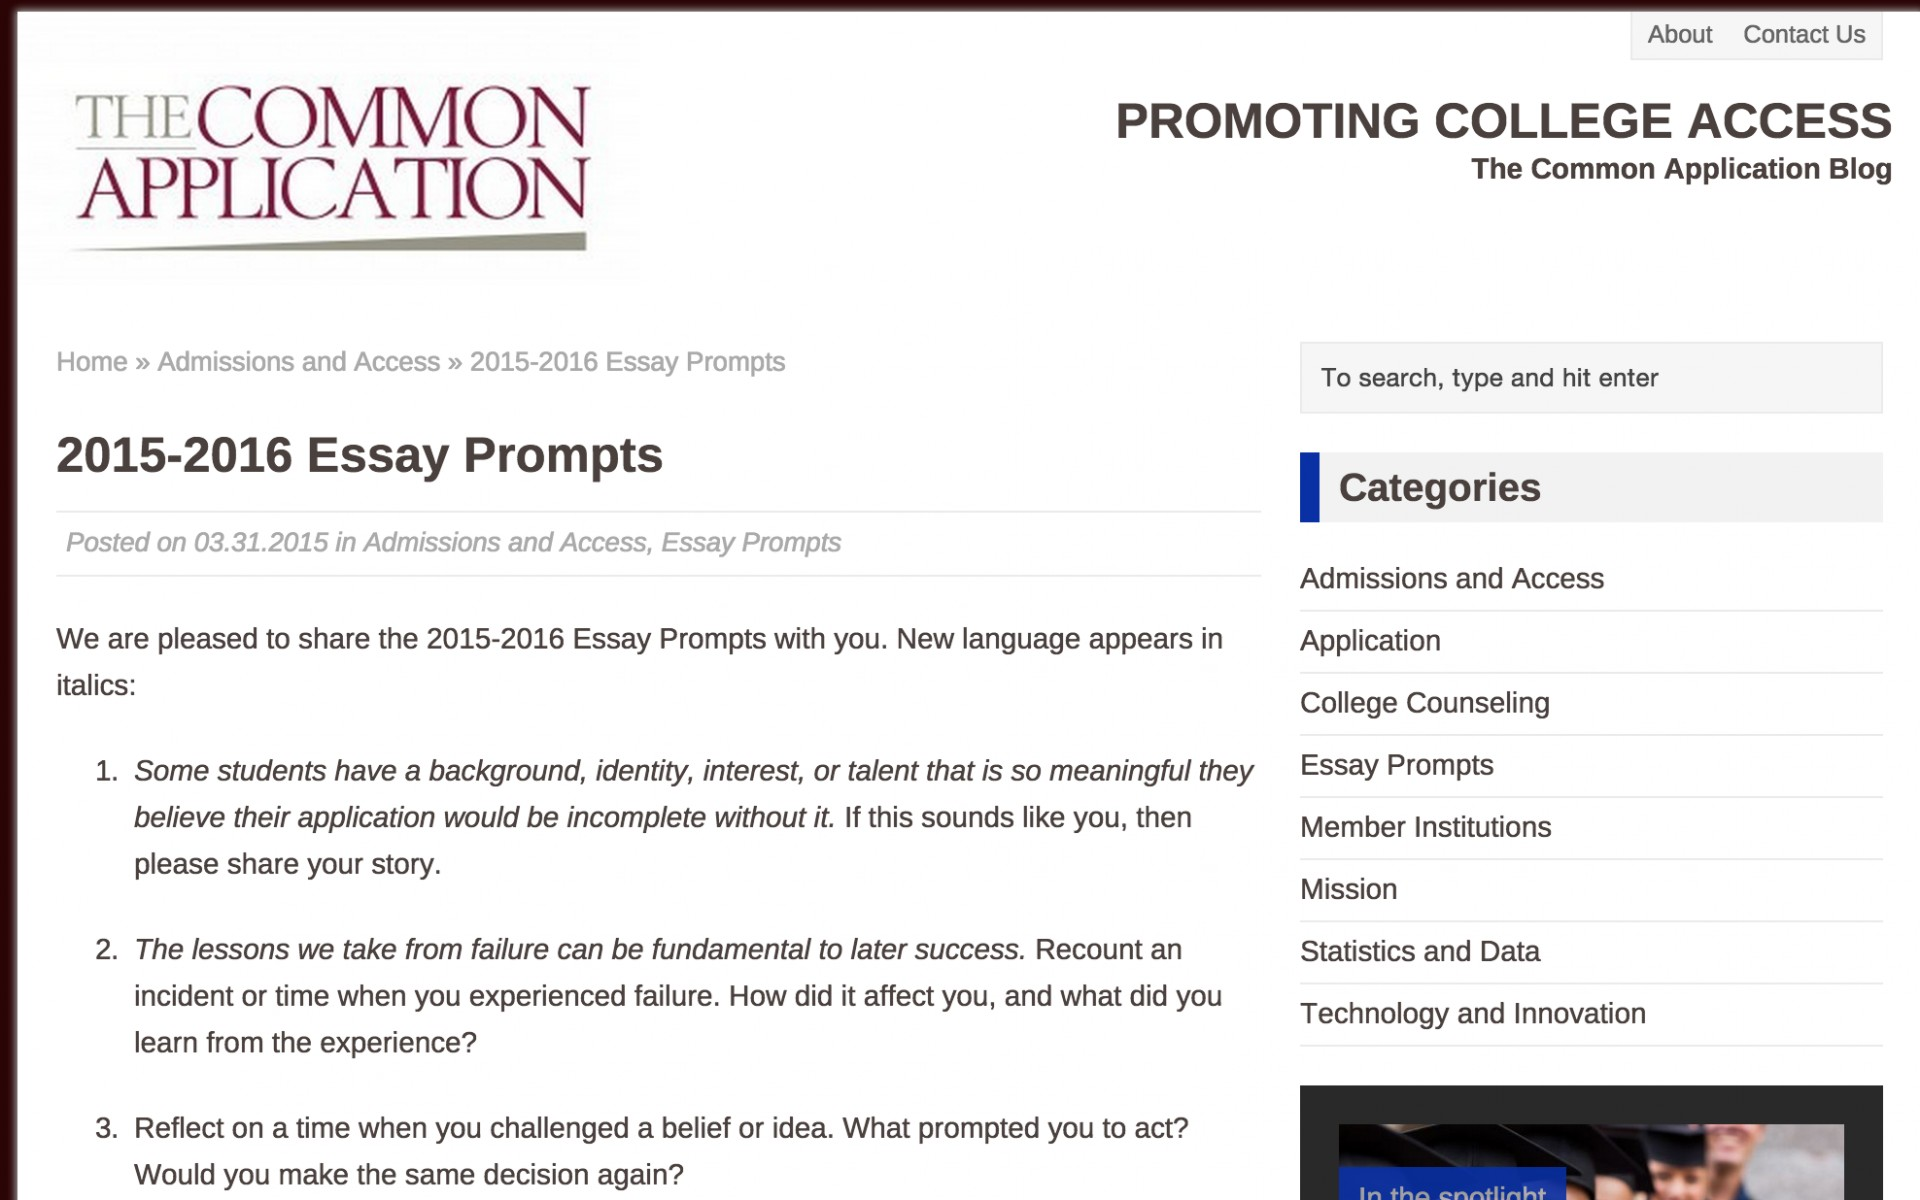 004 Essay Example Screen Shot At Pm Common App Outstanding Ideas Examples Option 2 2017 1920